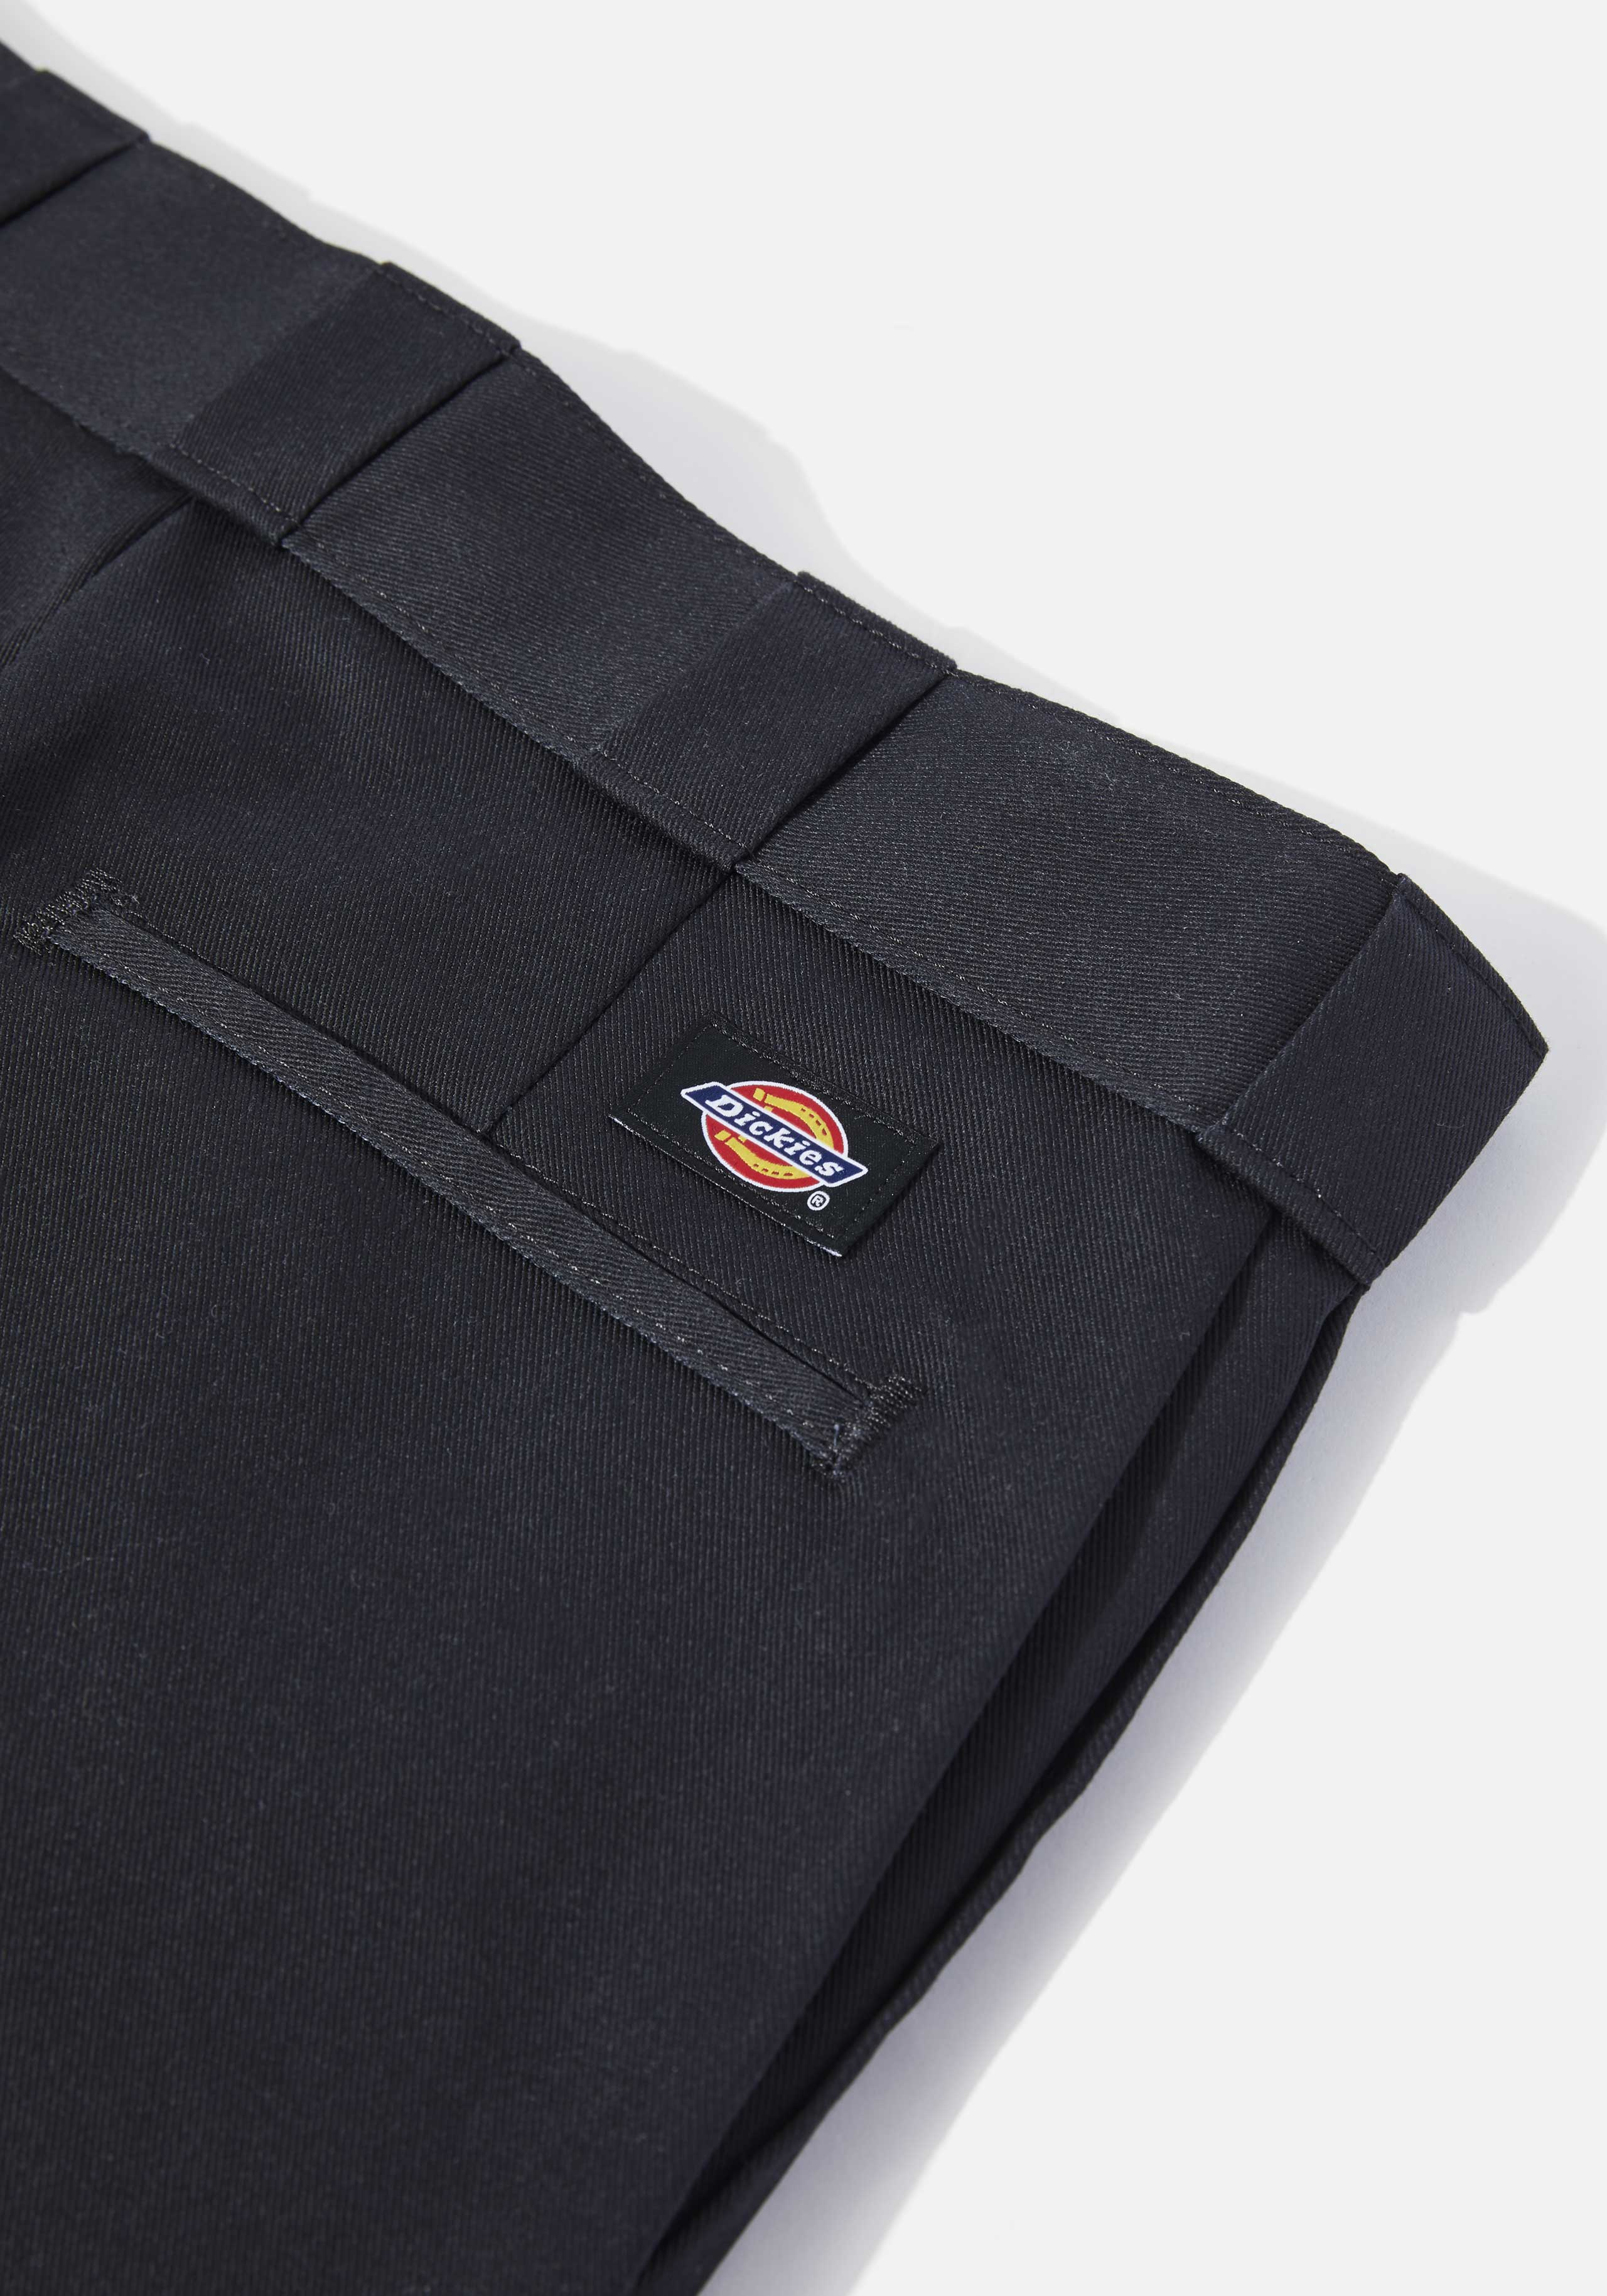 dickies mki work pant 6